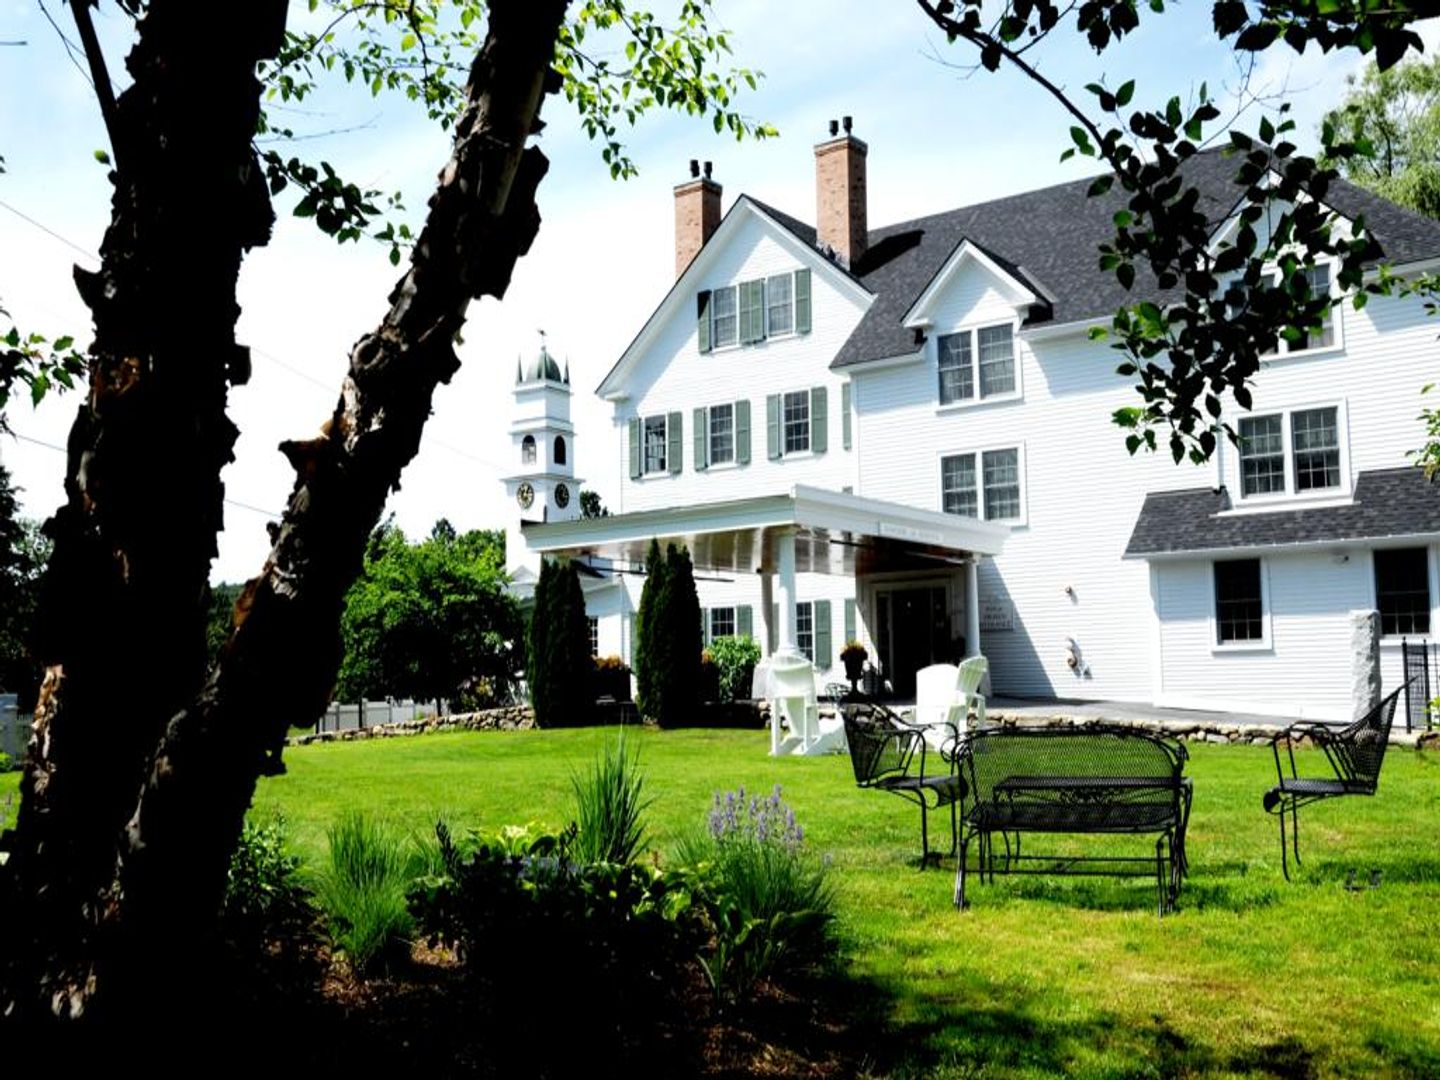 A large lawn in front of a house at The Lyme Inn.